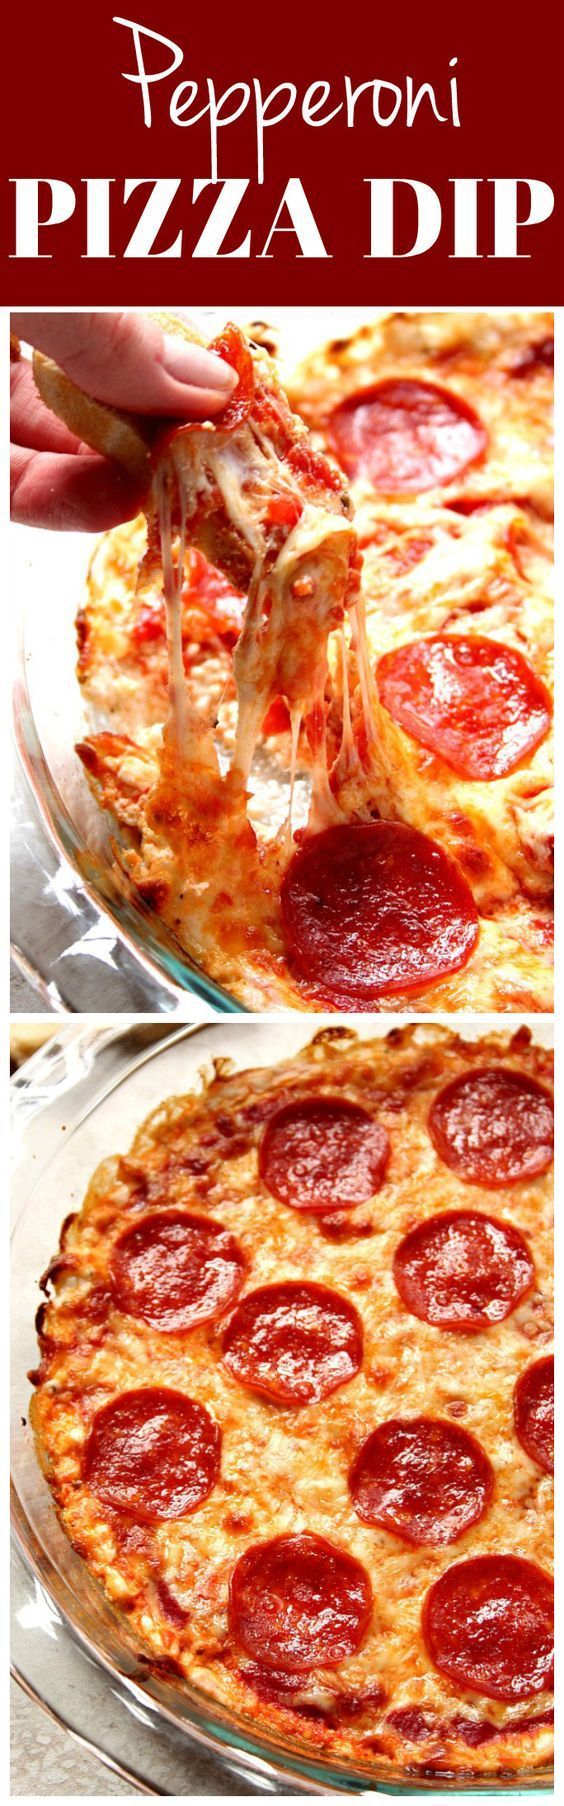 Pepperoni Pizza Dip recipe - super easy and absolutely irresistible dip for pizza lovers! This hot and bubbly appetizer will be the hit of your next game day party!